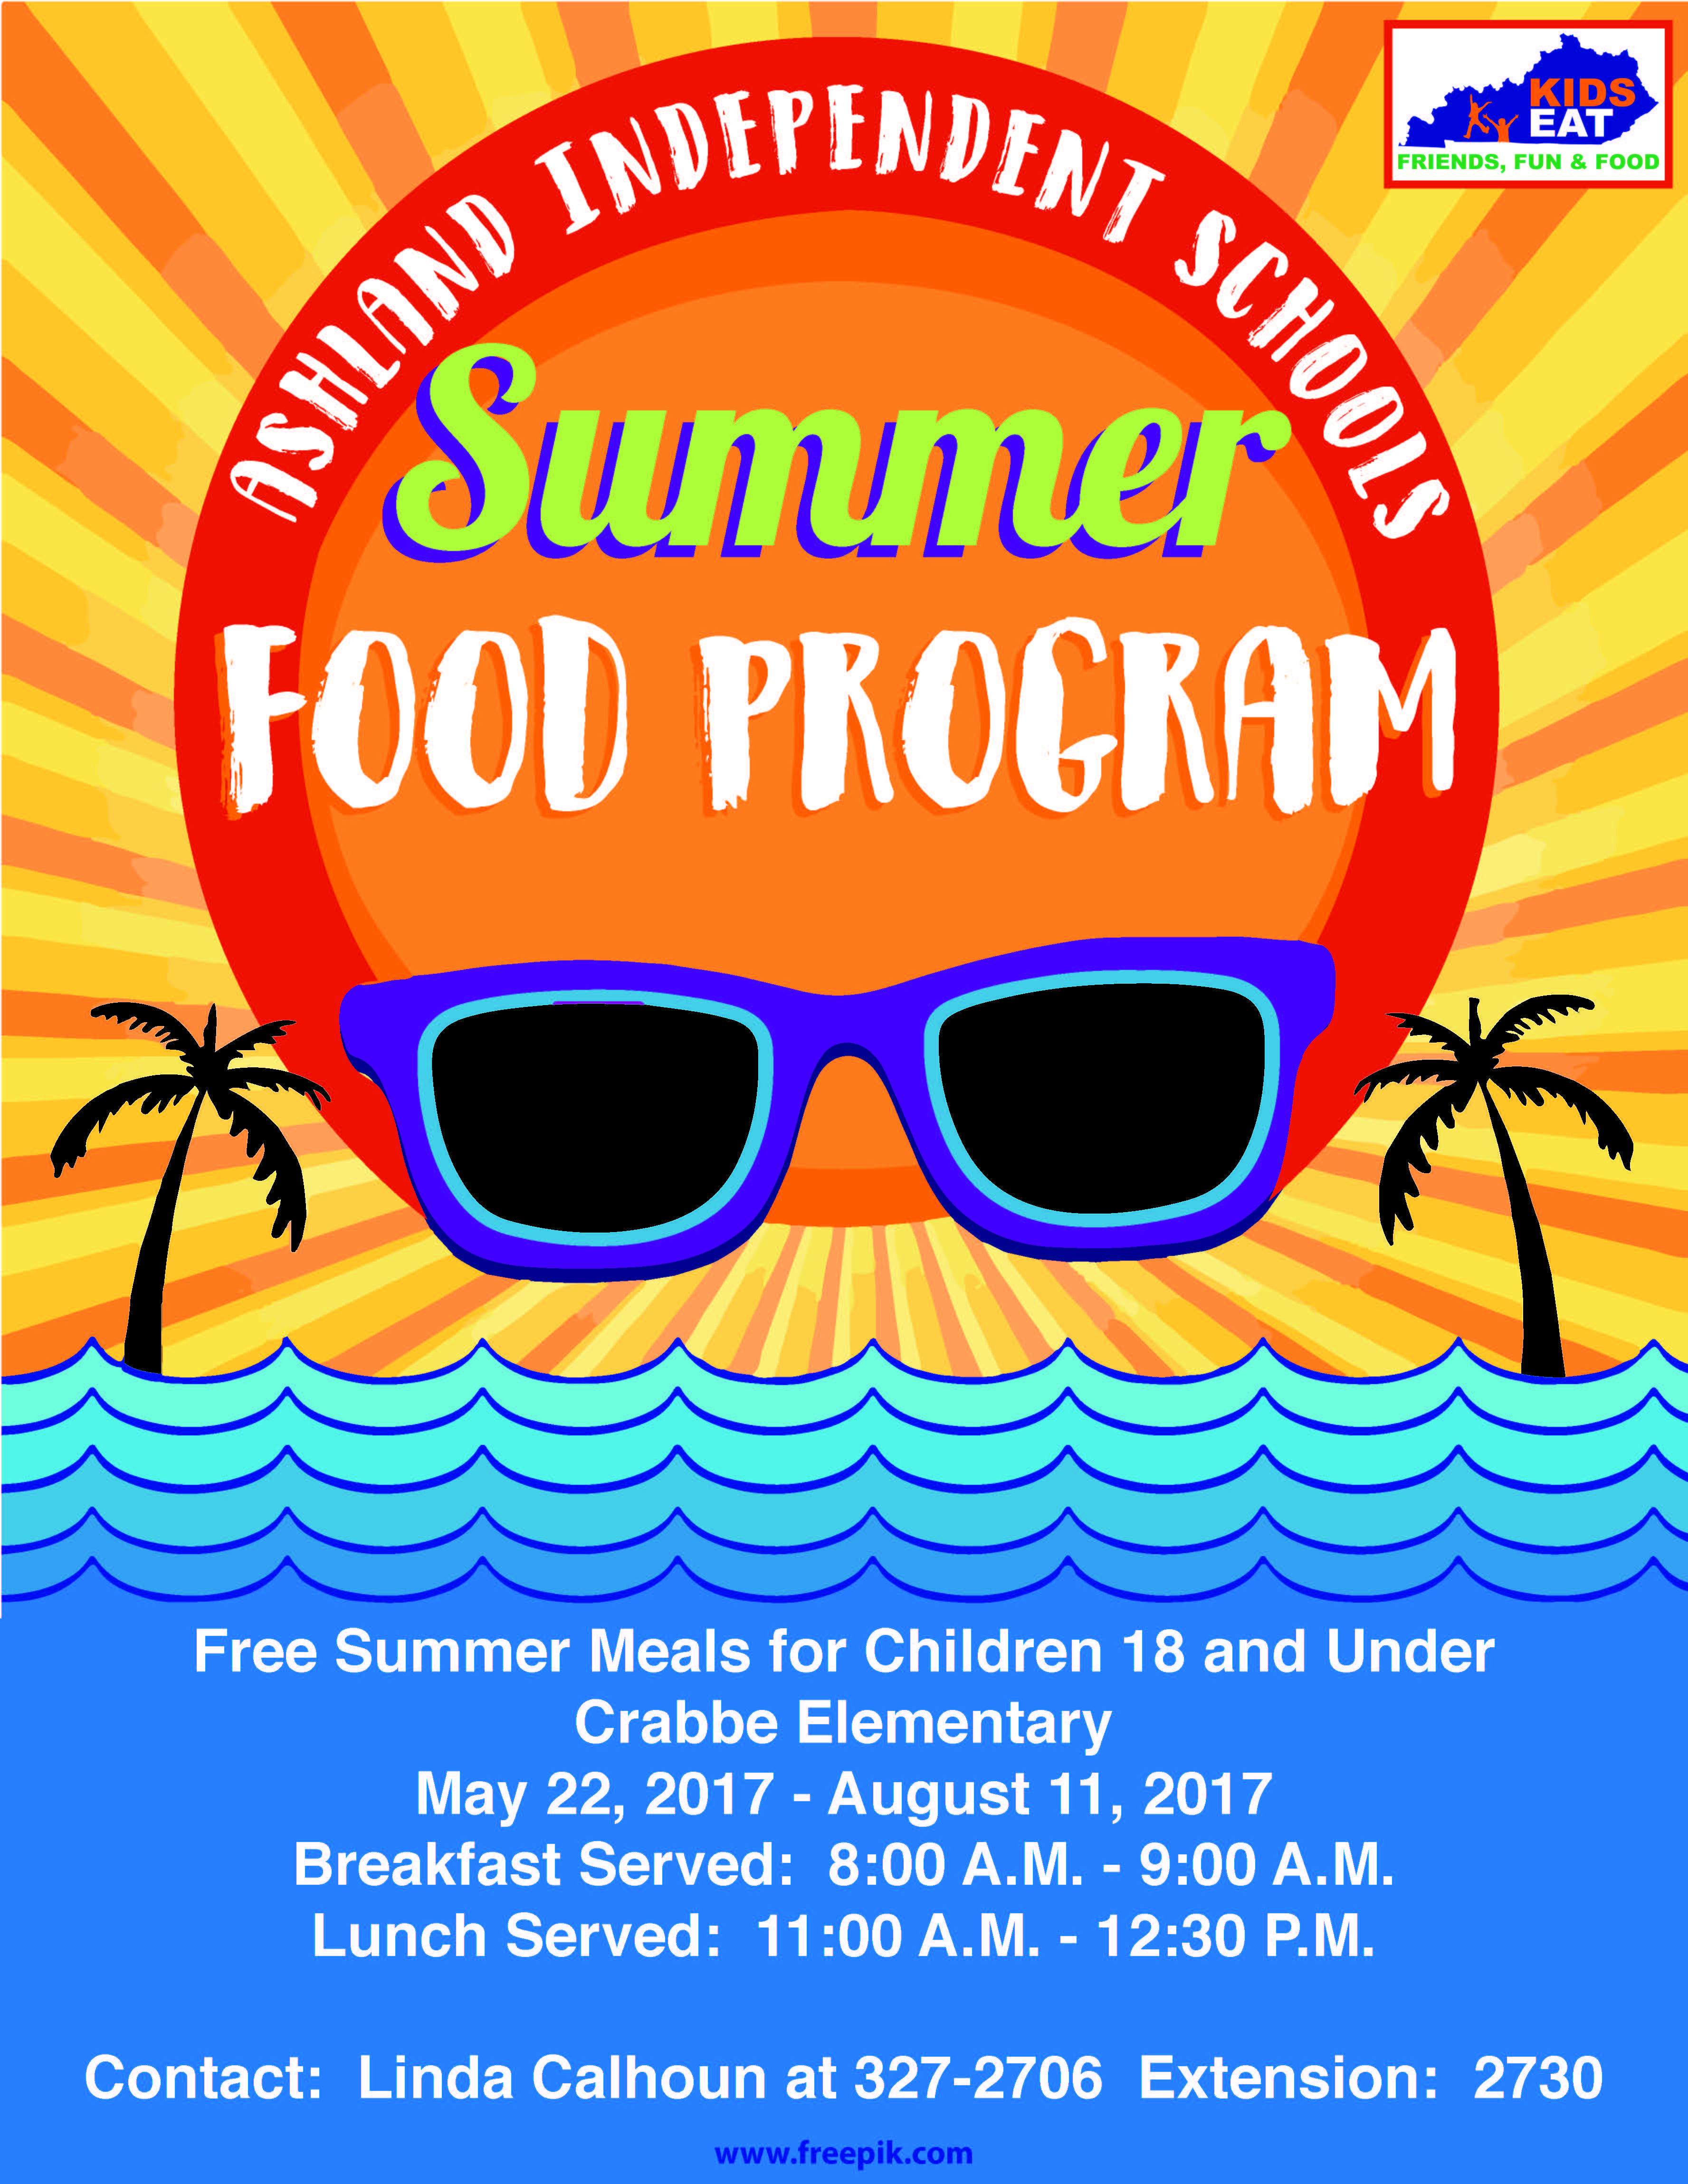 Summer feed program flyer